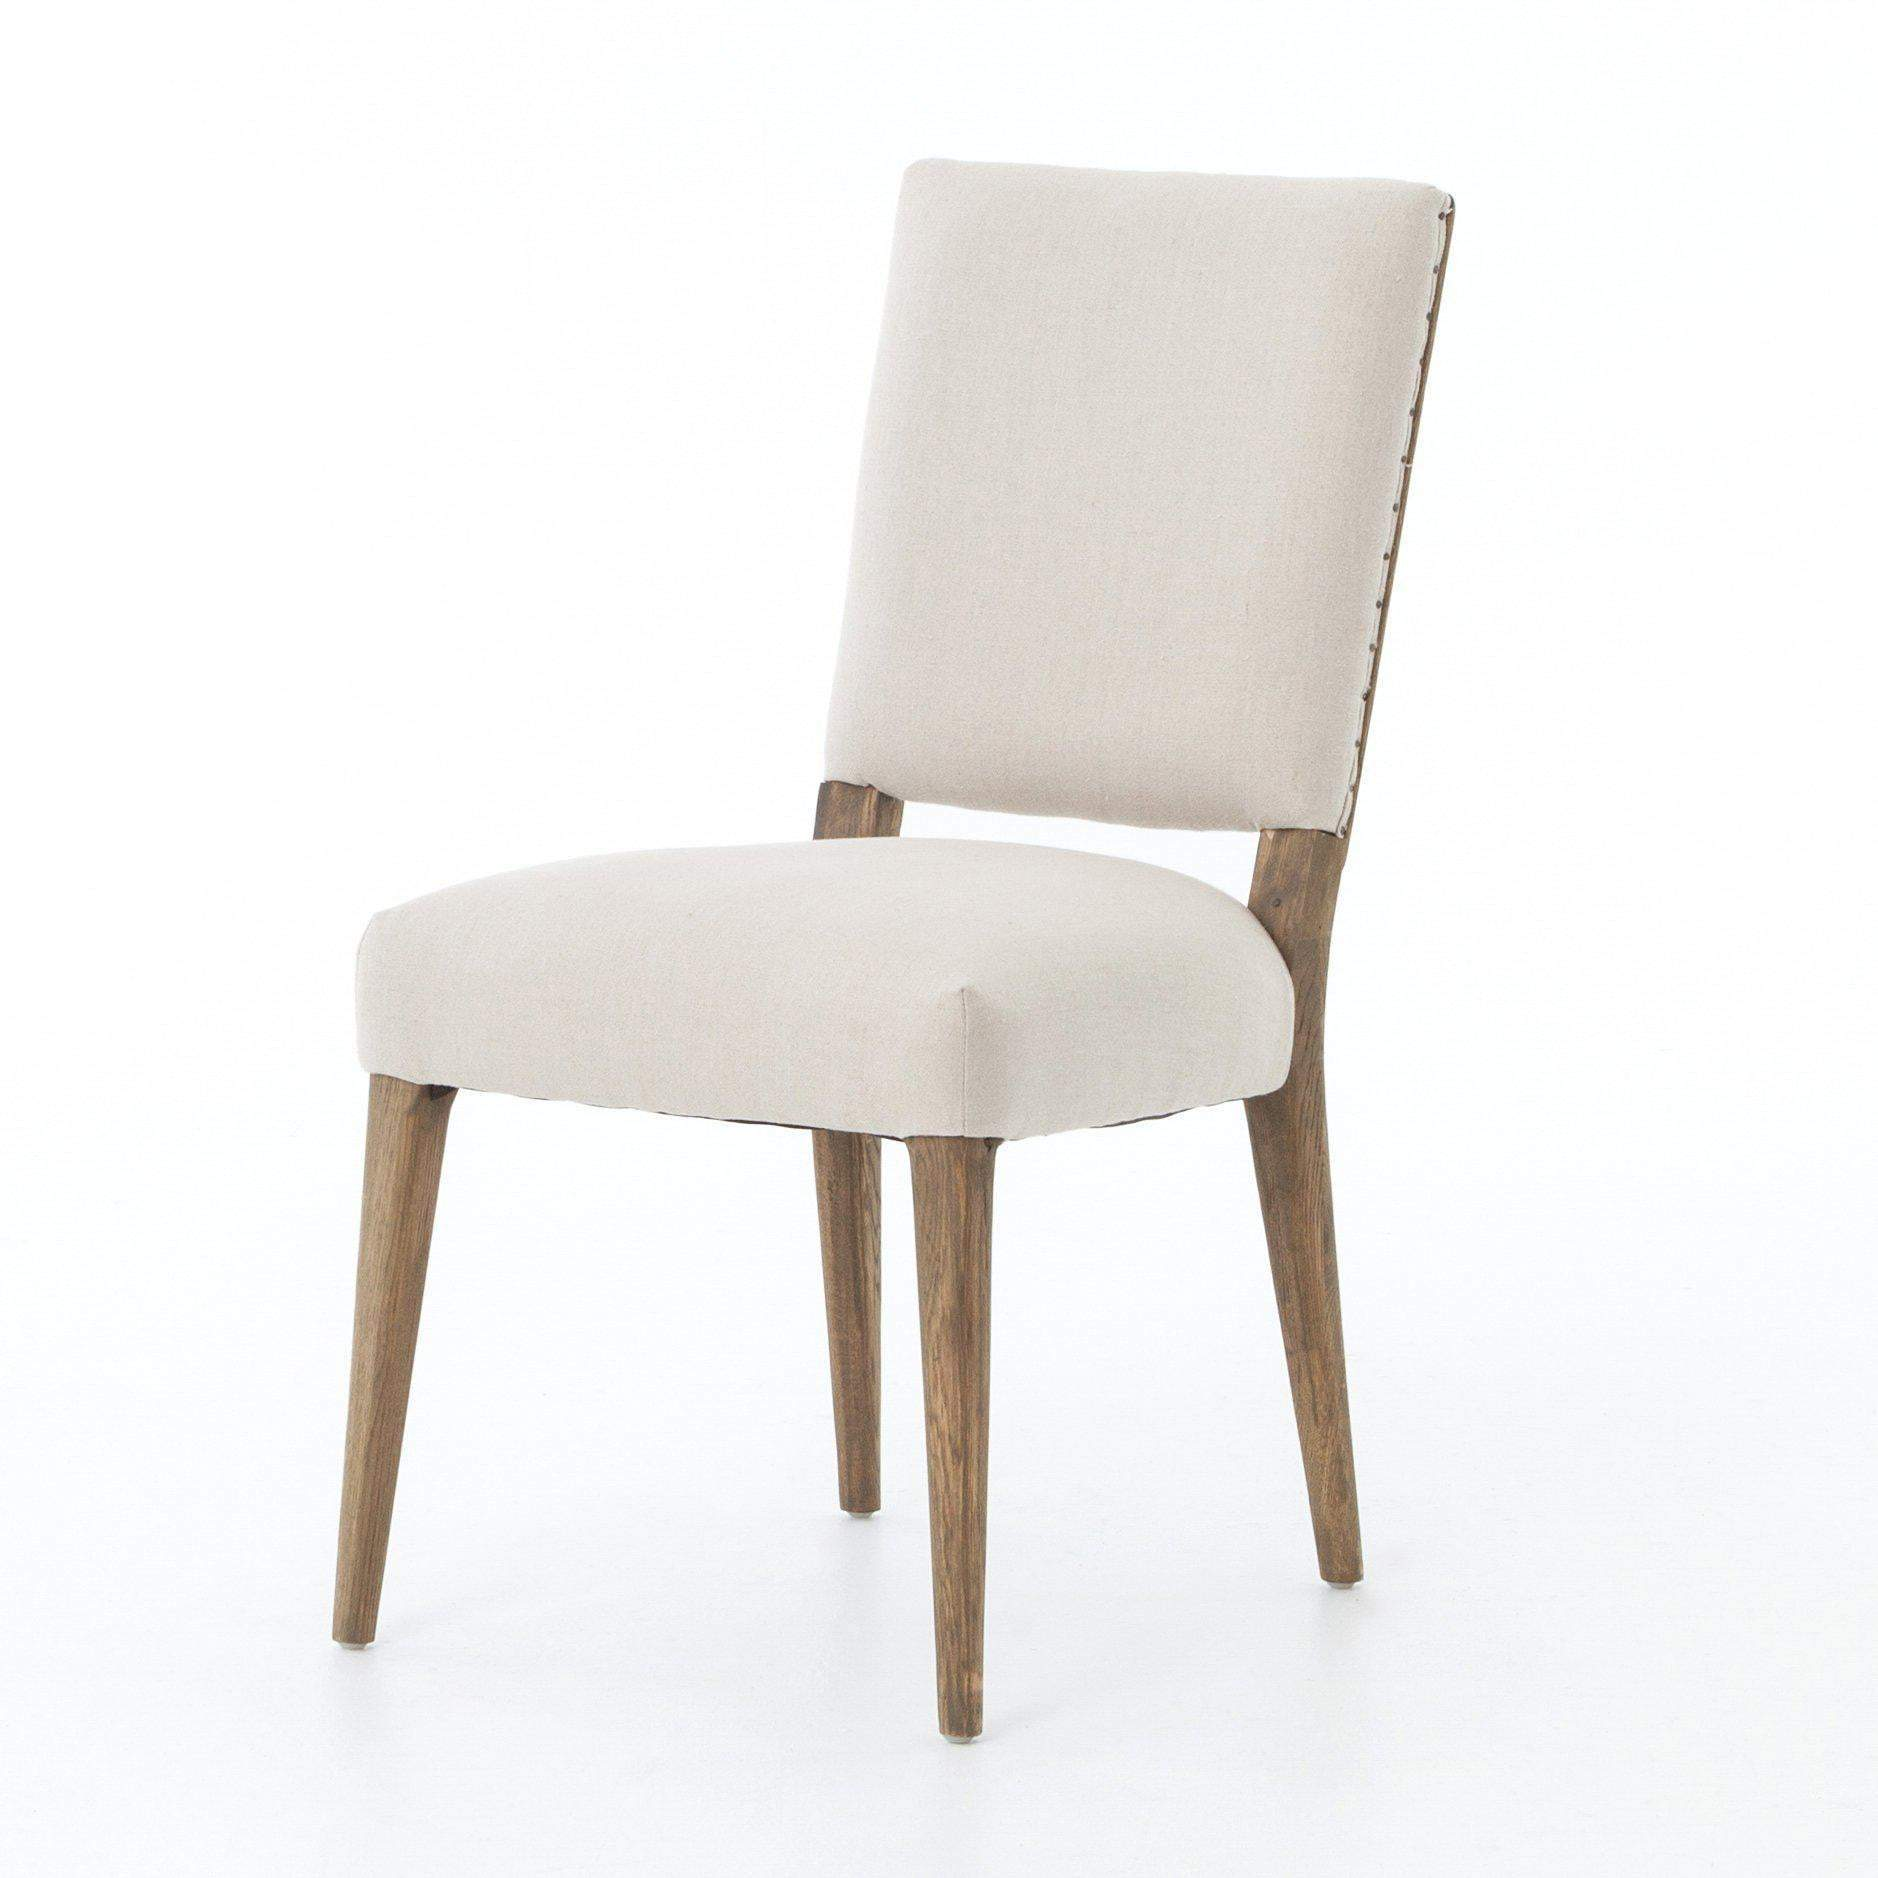 Abbott Collection Kurt Dining Chair: Dark Linen-Dining Chair-Parker Gwen